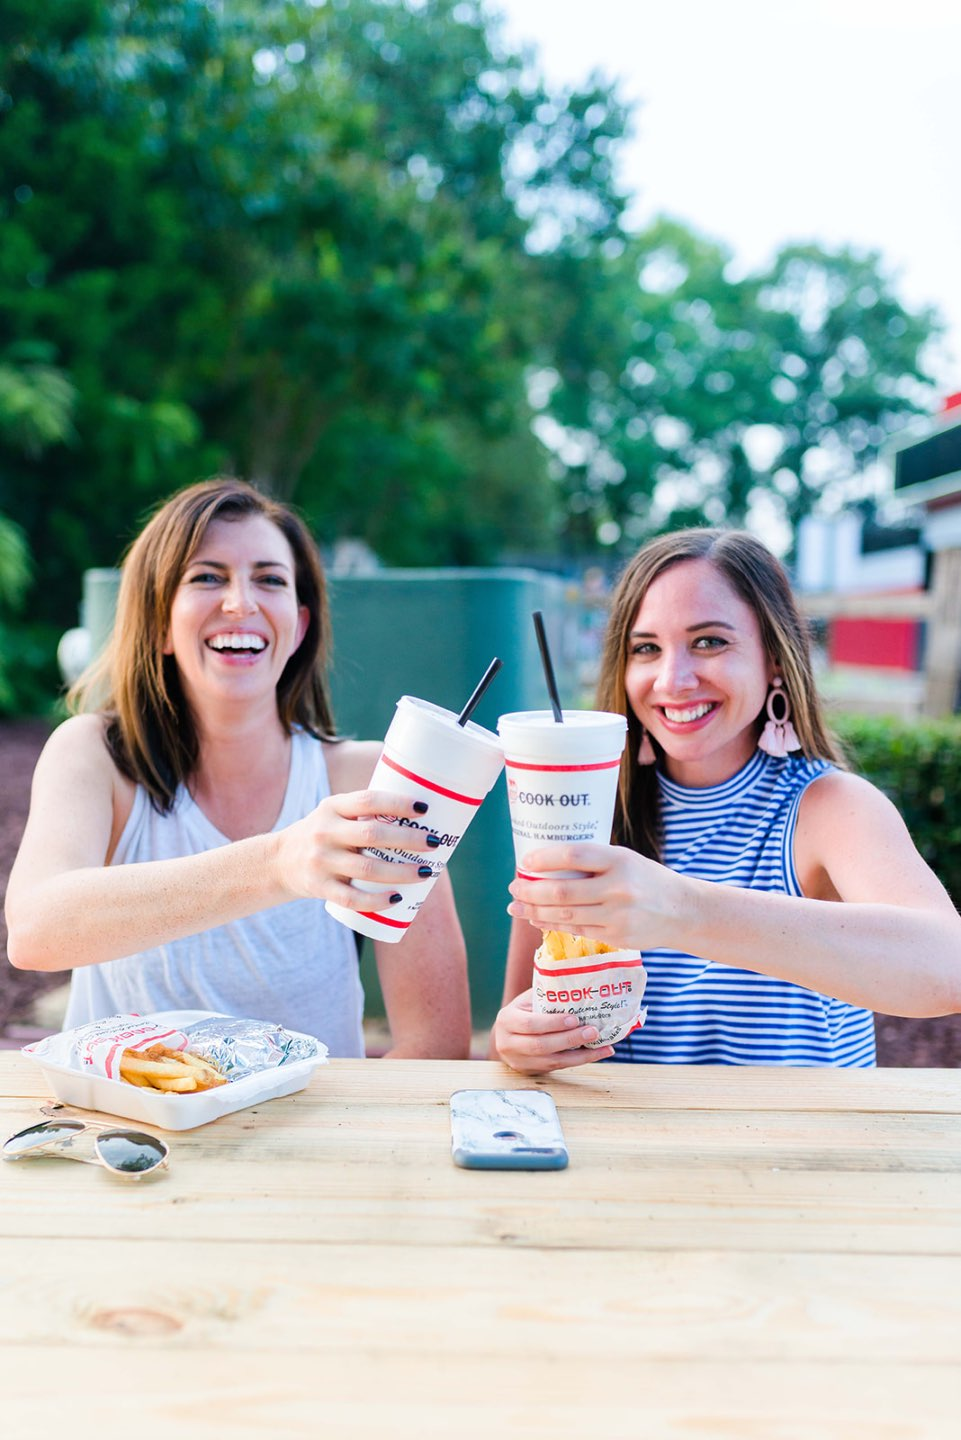 Most Popular Posts of 2020 - I'm Fixin' To - @imfixintoblog |Most Popular Posts by popular NC lifestyle blog, I'm Fixin' To: image of two women sitting together outside and eating burgers and fries.